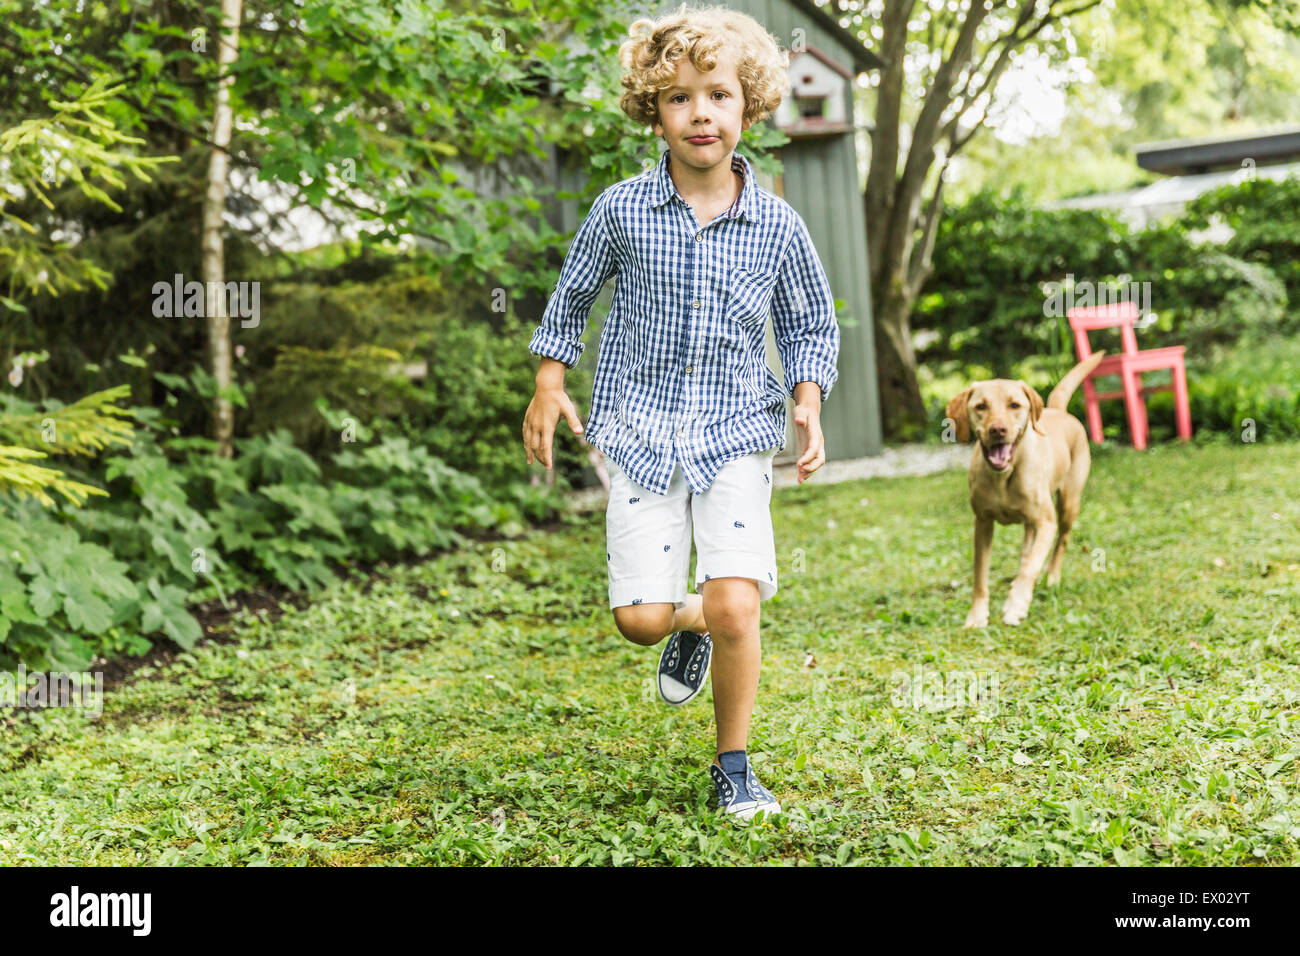 Boy running with dog in garden Photo Stock